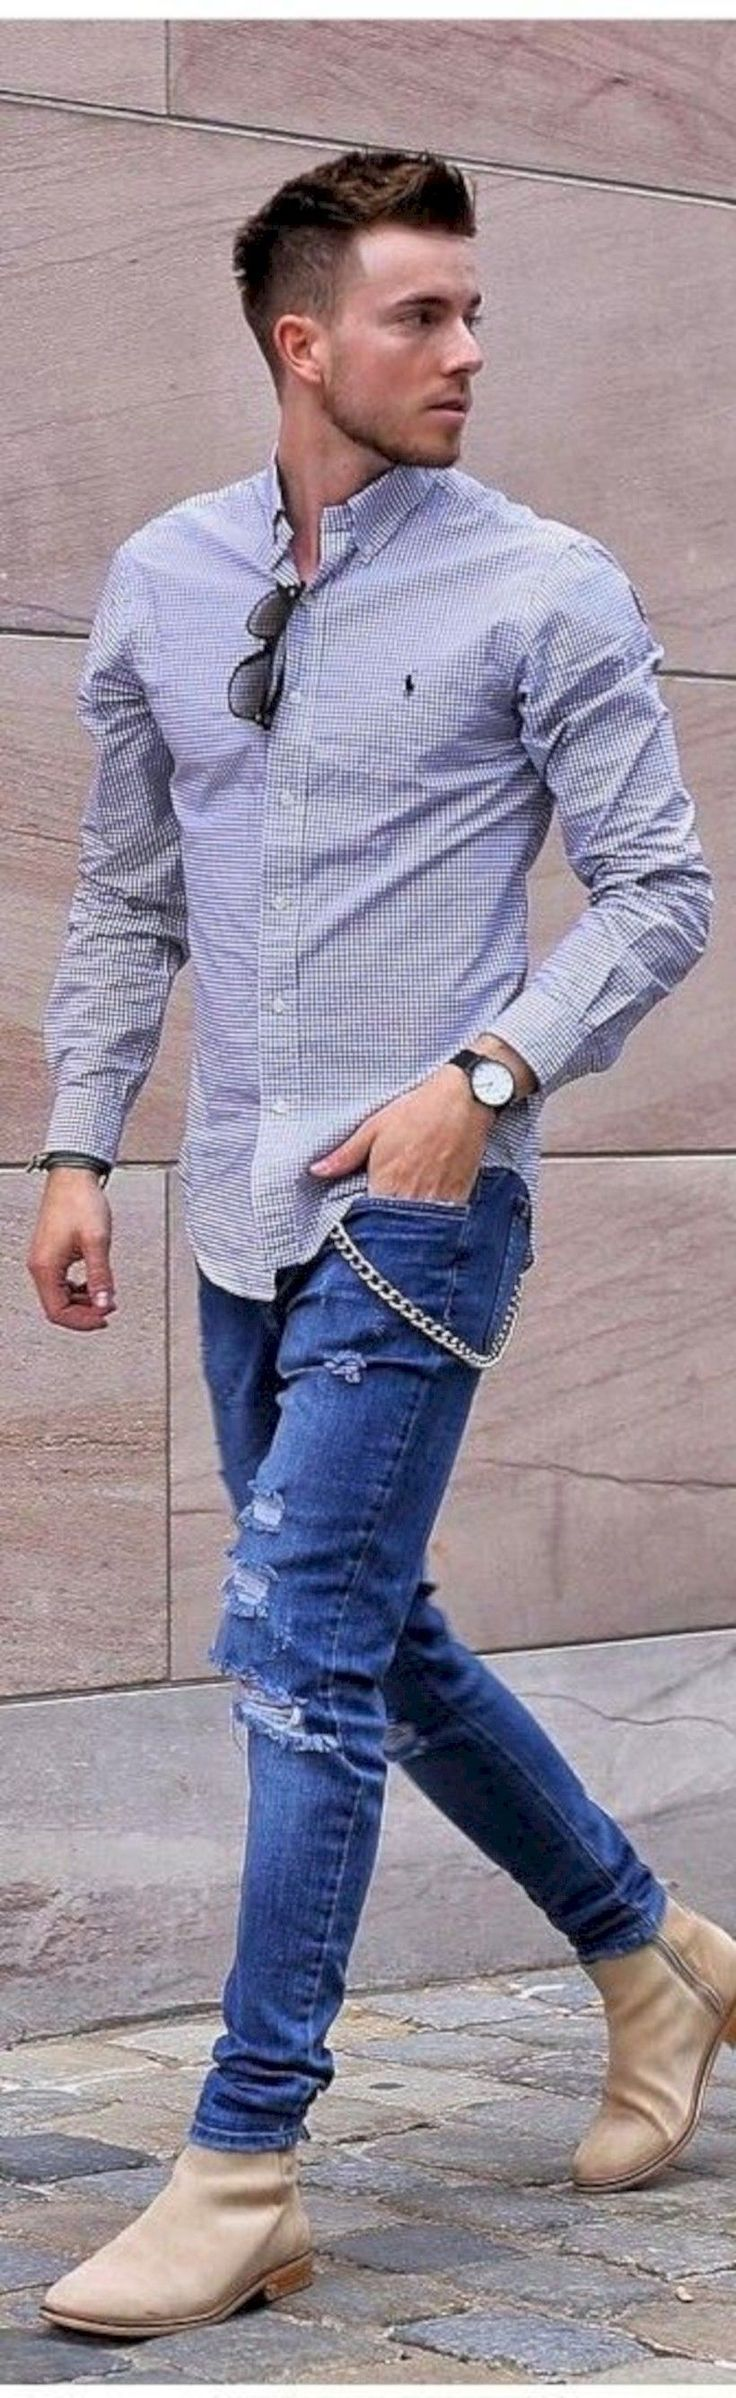 awesome 36 Men's Fashion Casual Jeans Outfits https://attirepin.com/2018/02/18/36-mens-fashion-casual-jeans-outfits/ #men'scasualoutfits #mensjeansoutfit #menoutfits